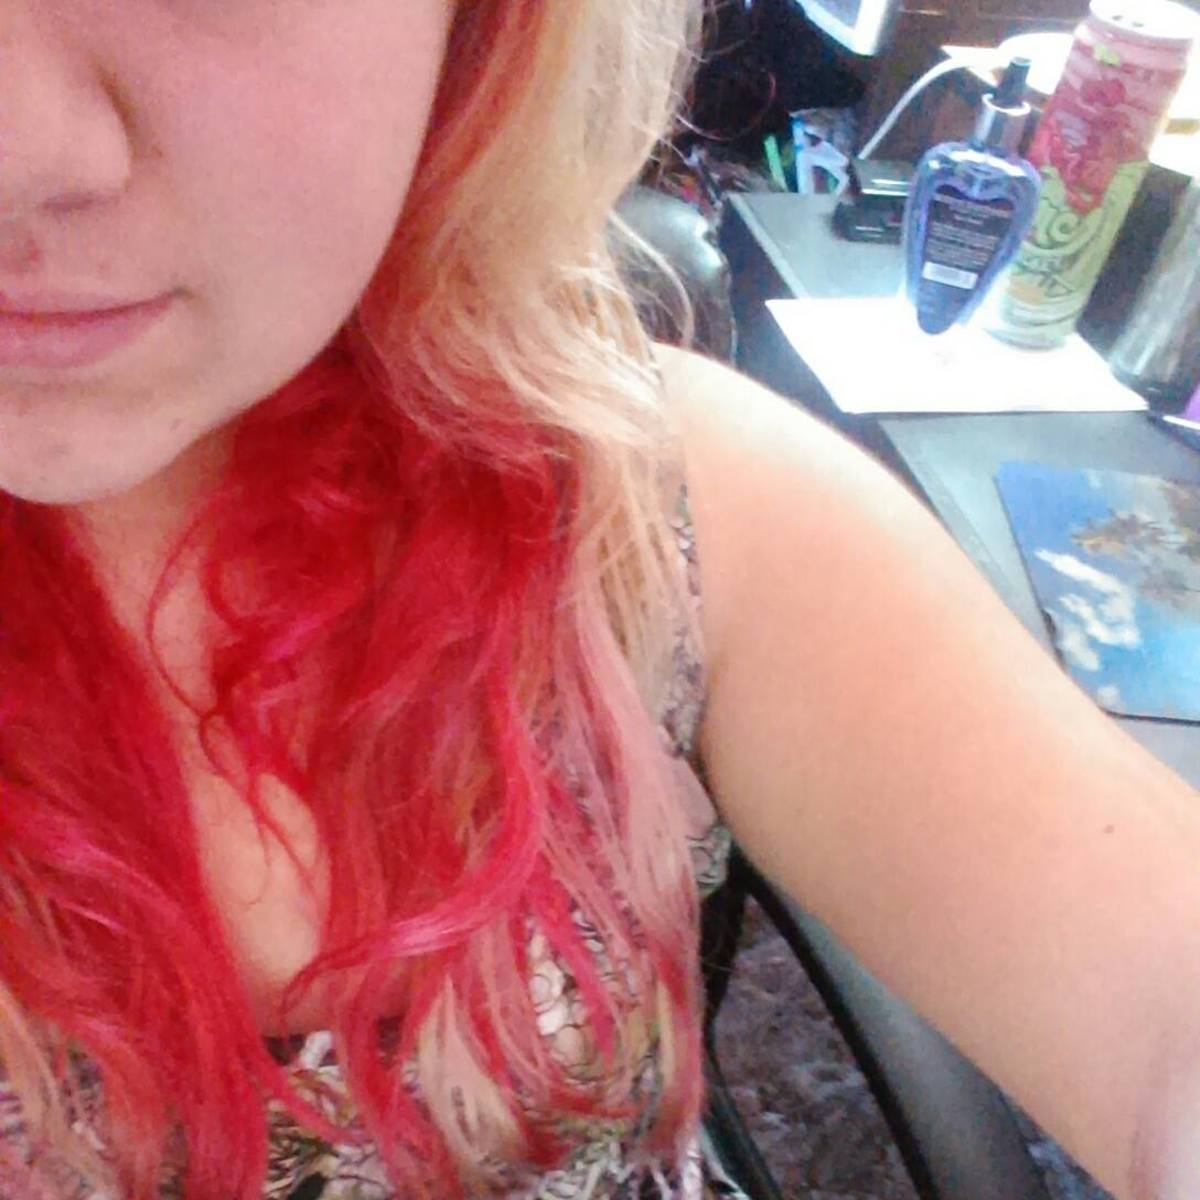 Bleached and red hair. Surprise!